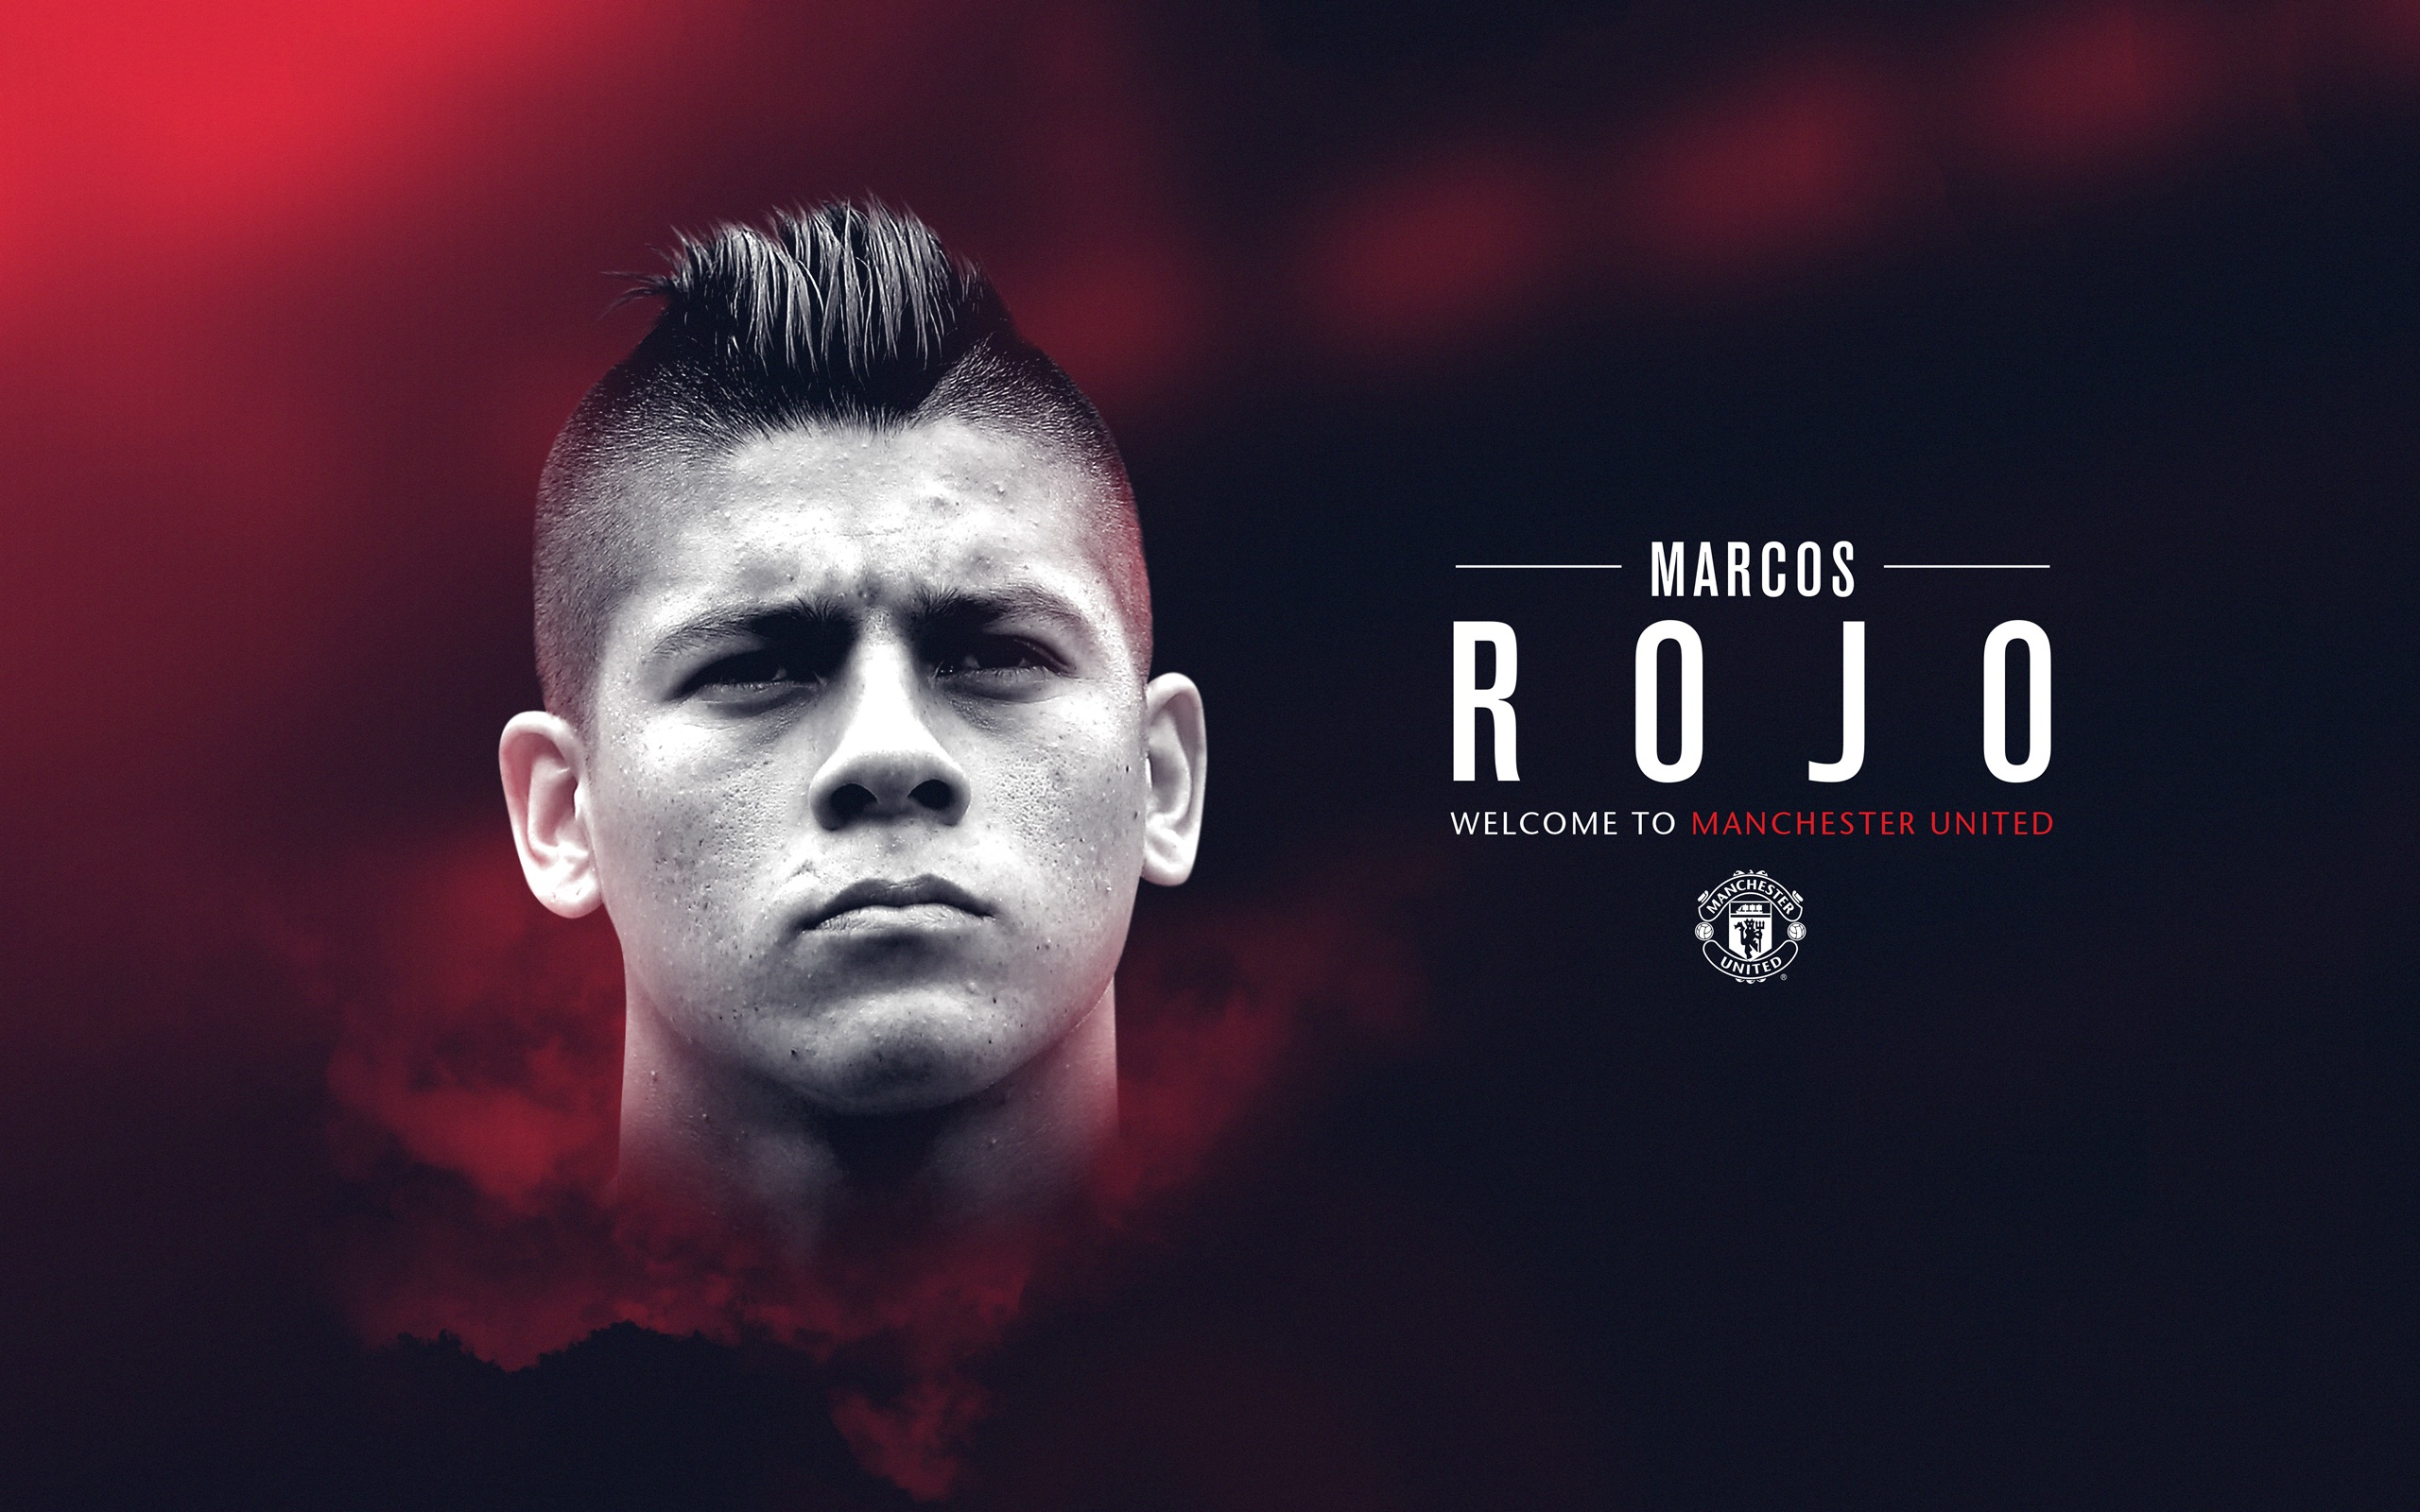 Marcos Rojo Wallpaper